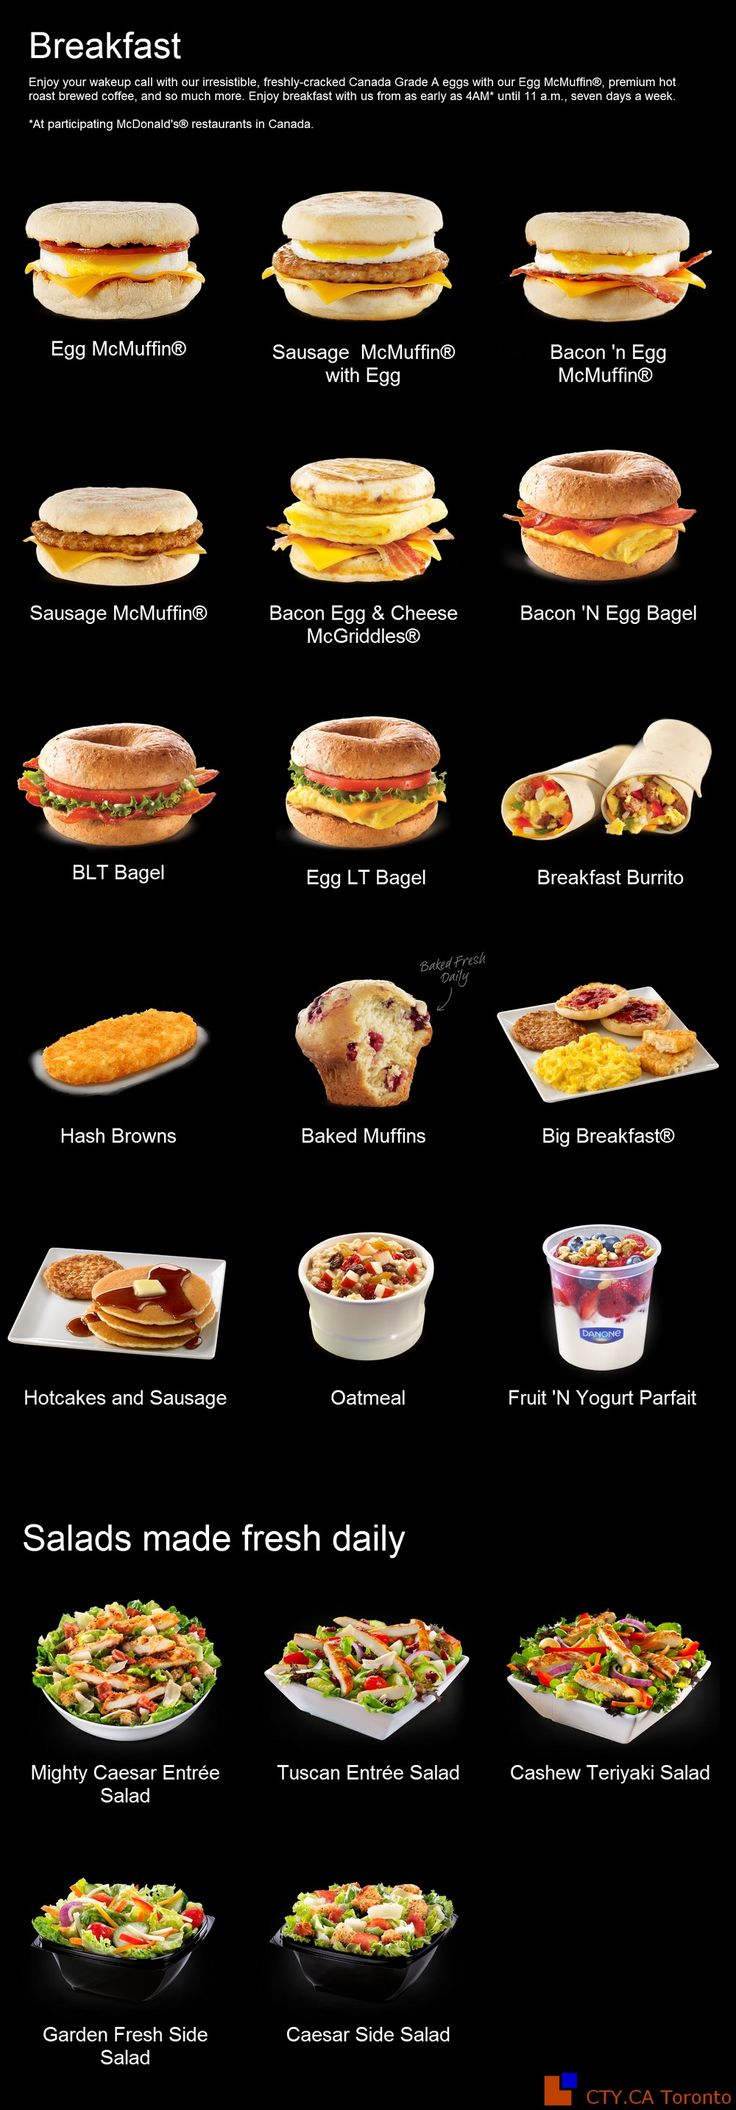 Facts About Mcdonald S Foods